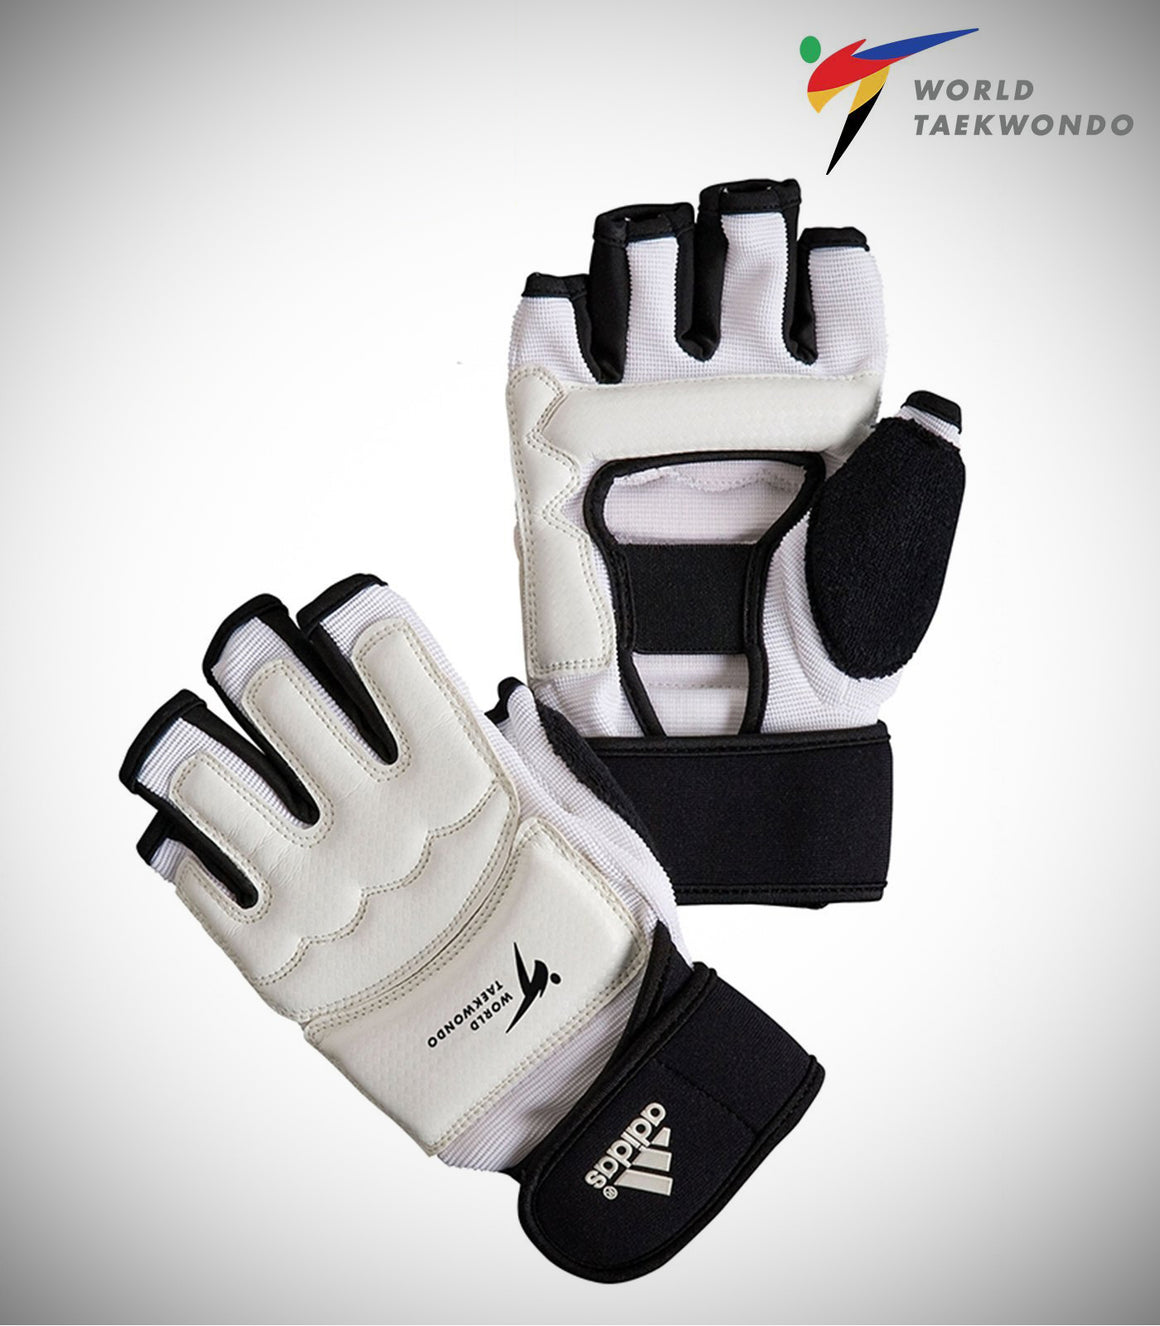 ADIDAS TAEKWONDO FIGHTER GLOVE